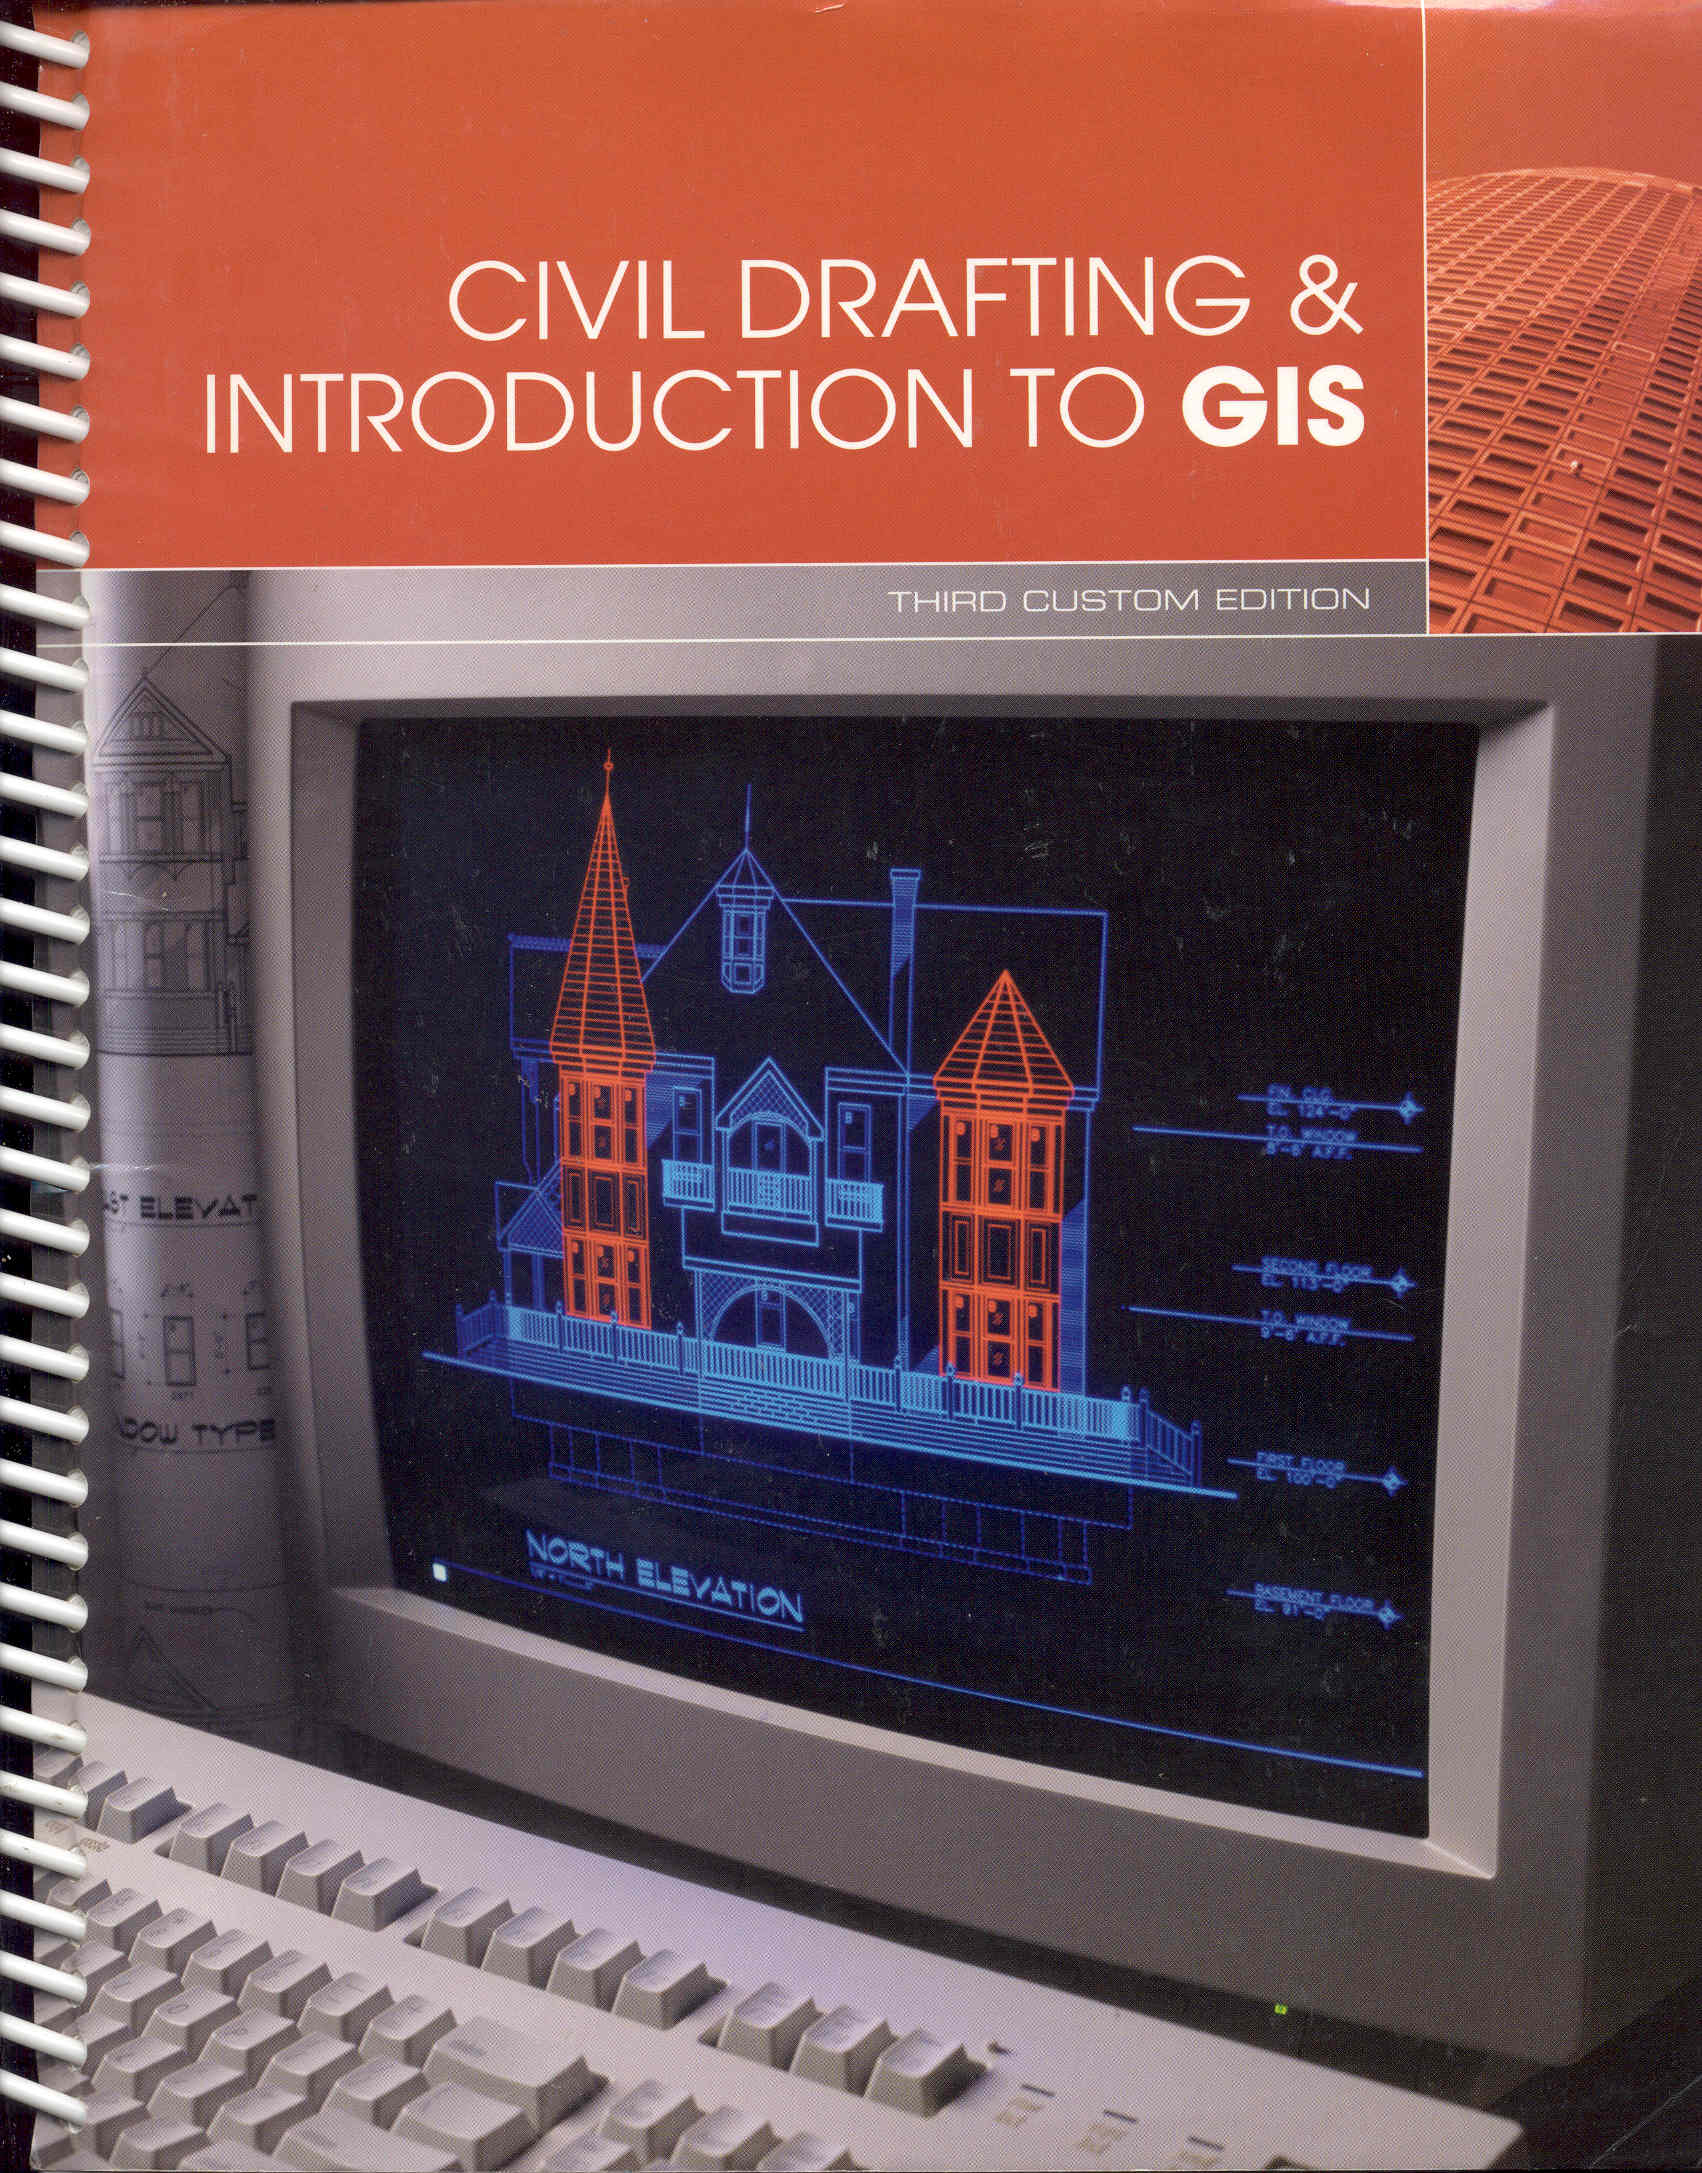 Image for Civil Drafting & Introduction to GIS Third Custom Edition